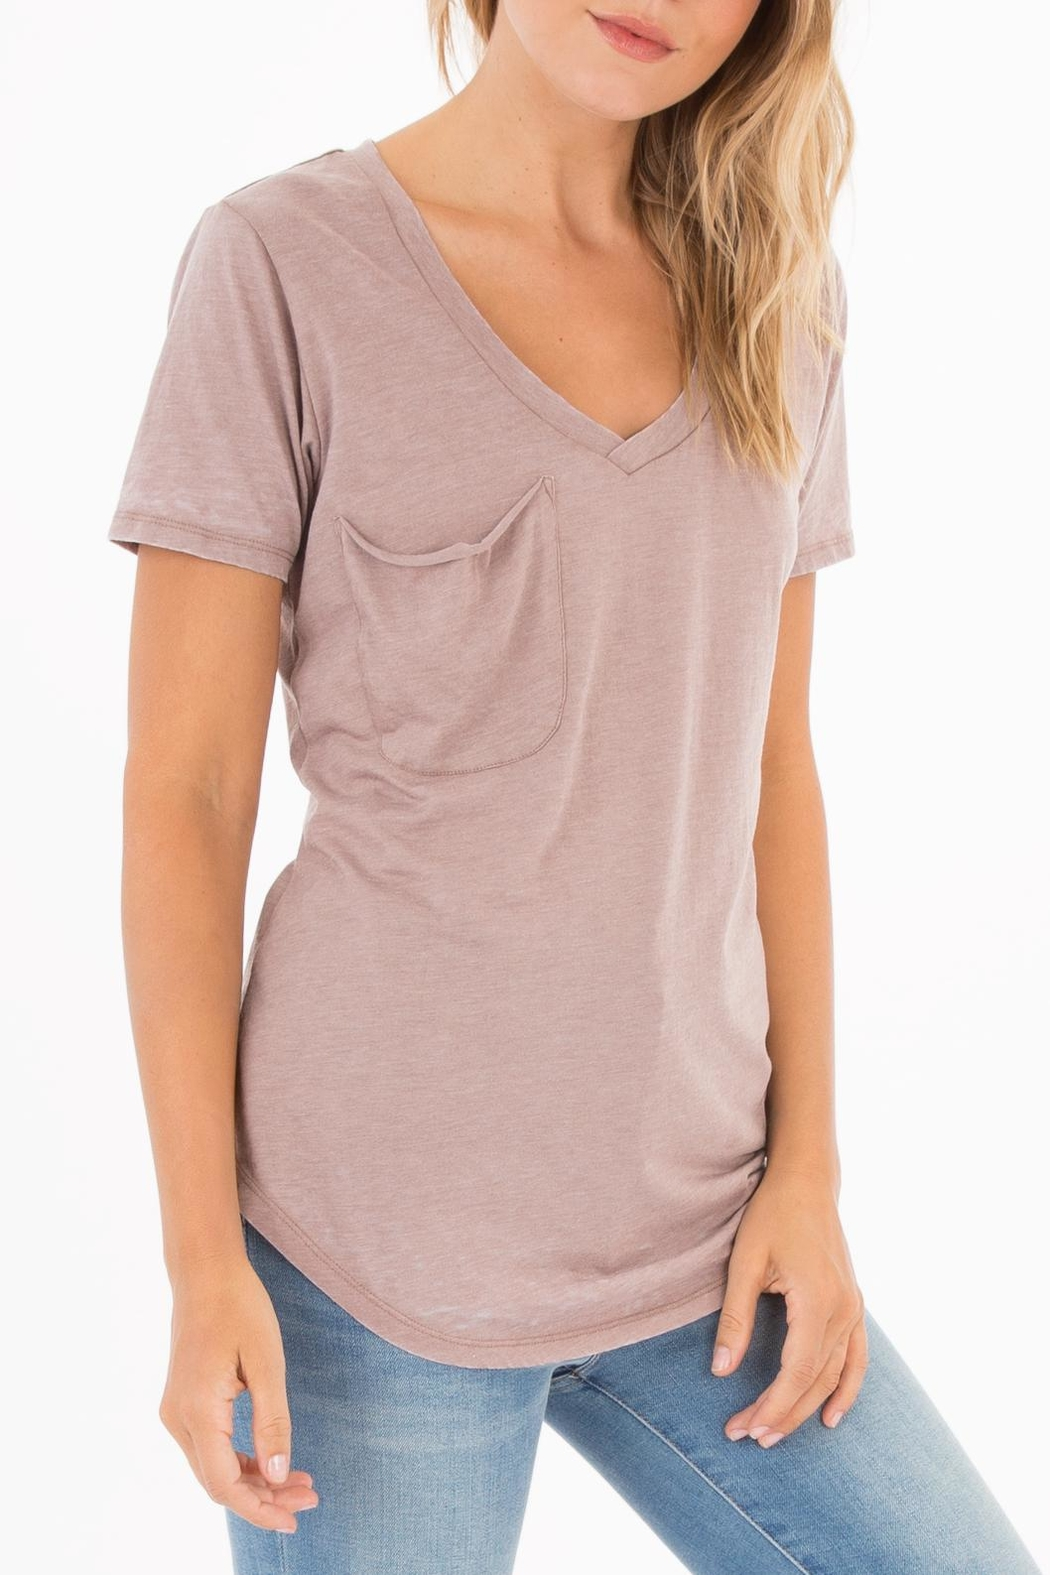 Apricot Lane Pocket Tee-Taupe/grey - Front Full Image